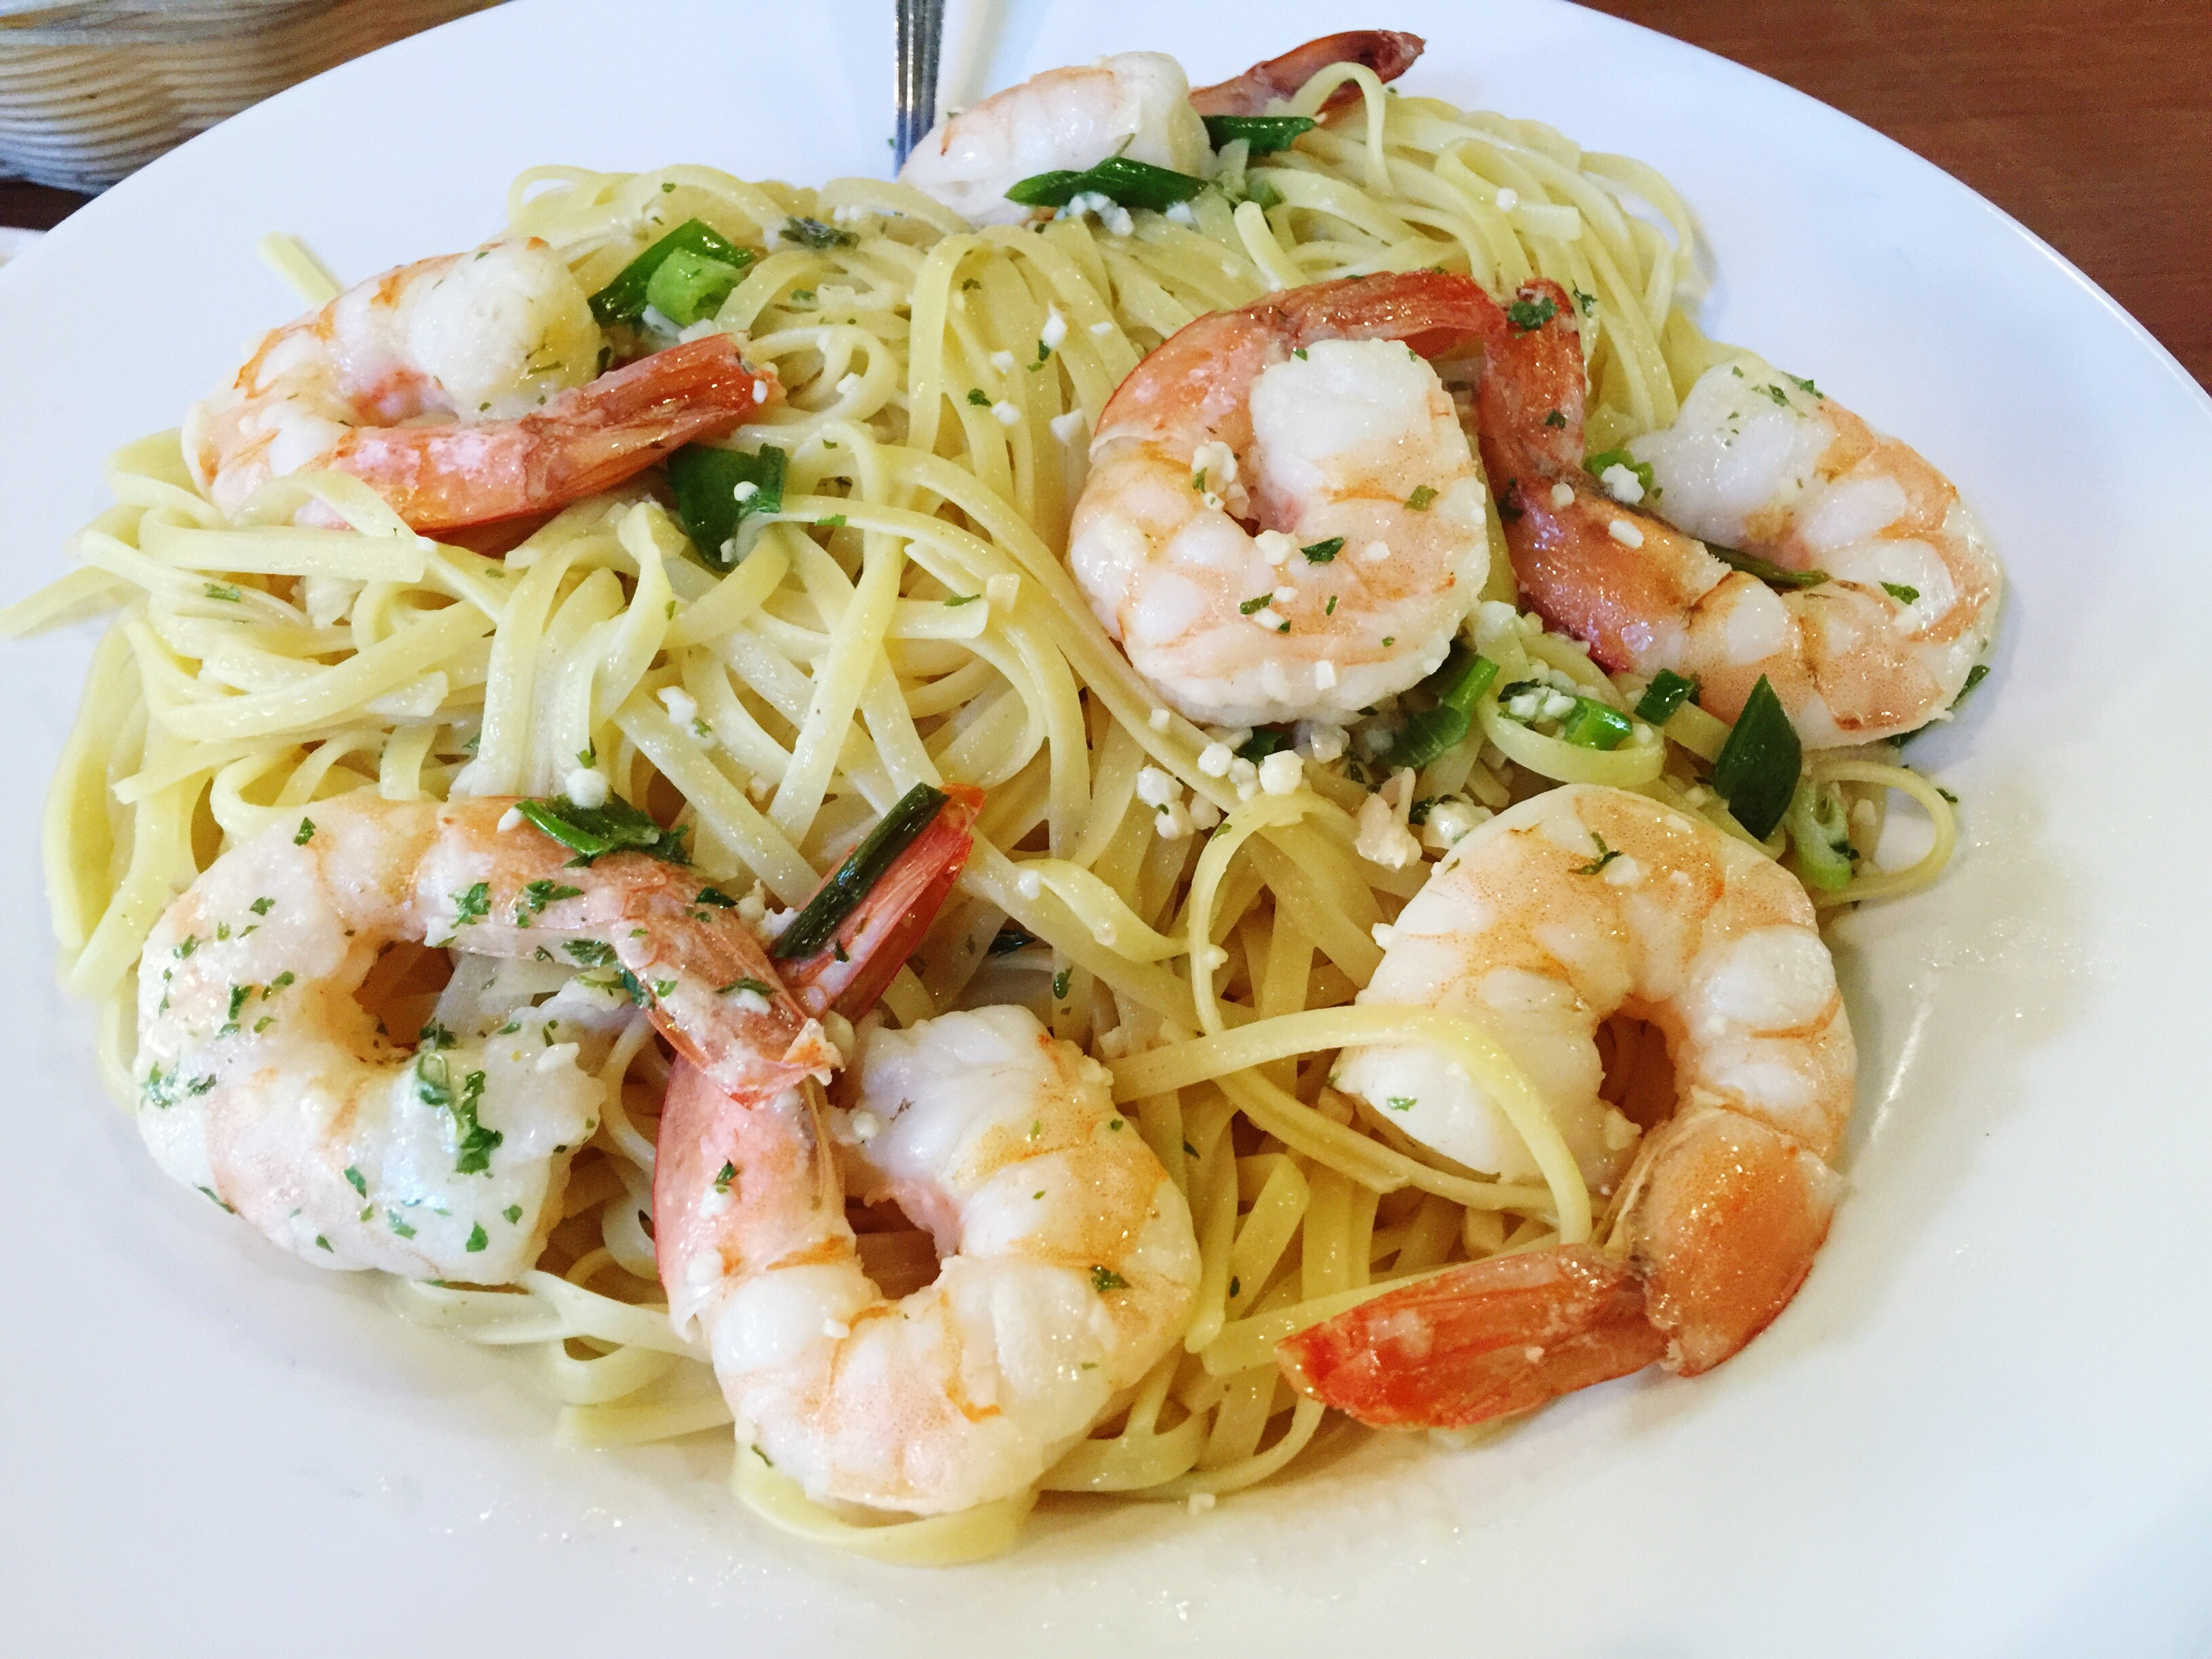 High Angle View Of Pasta And Shrimps In Plate On Table